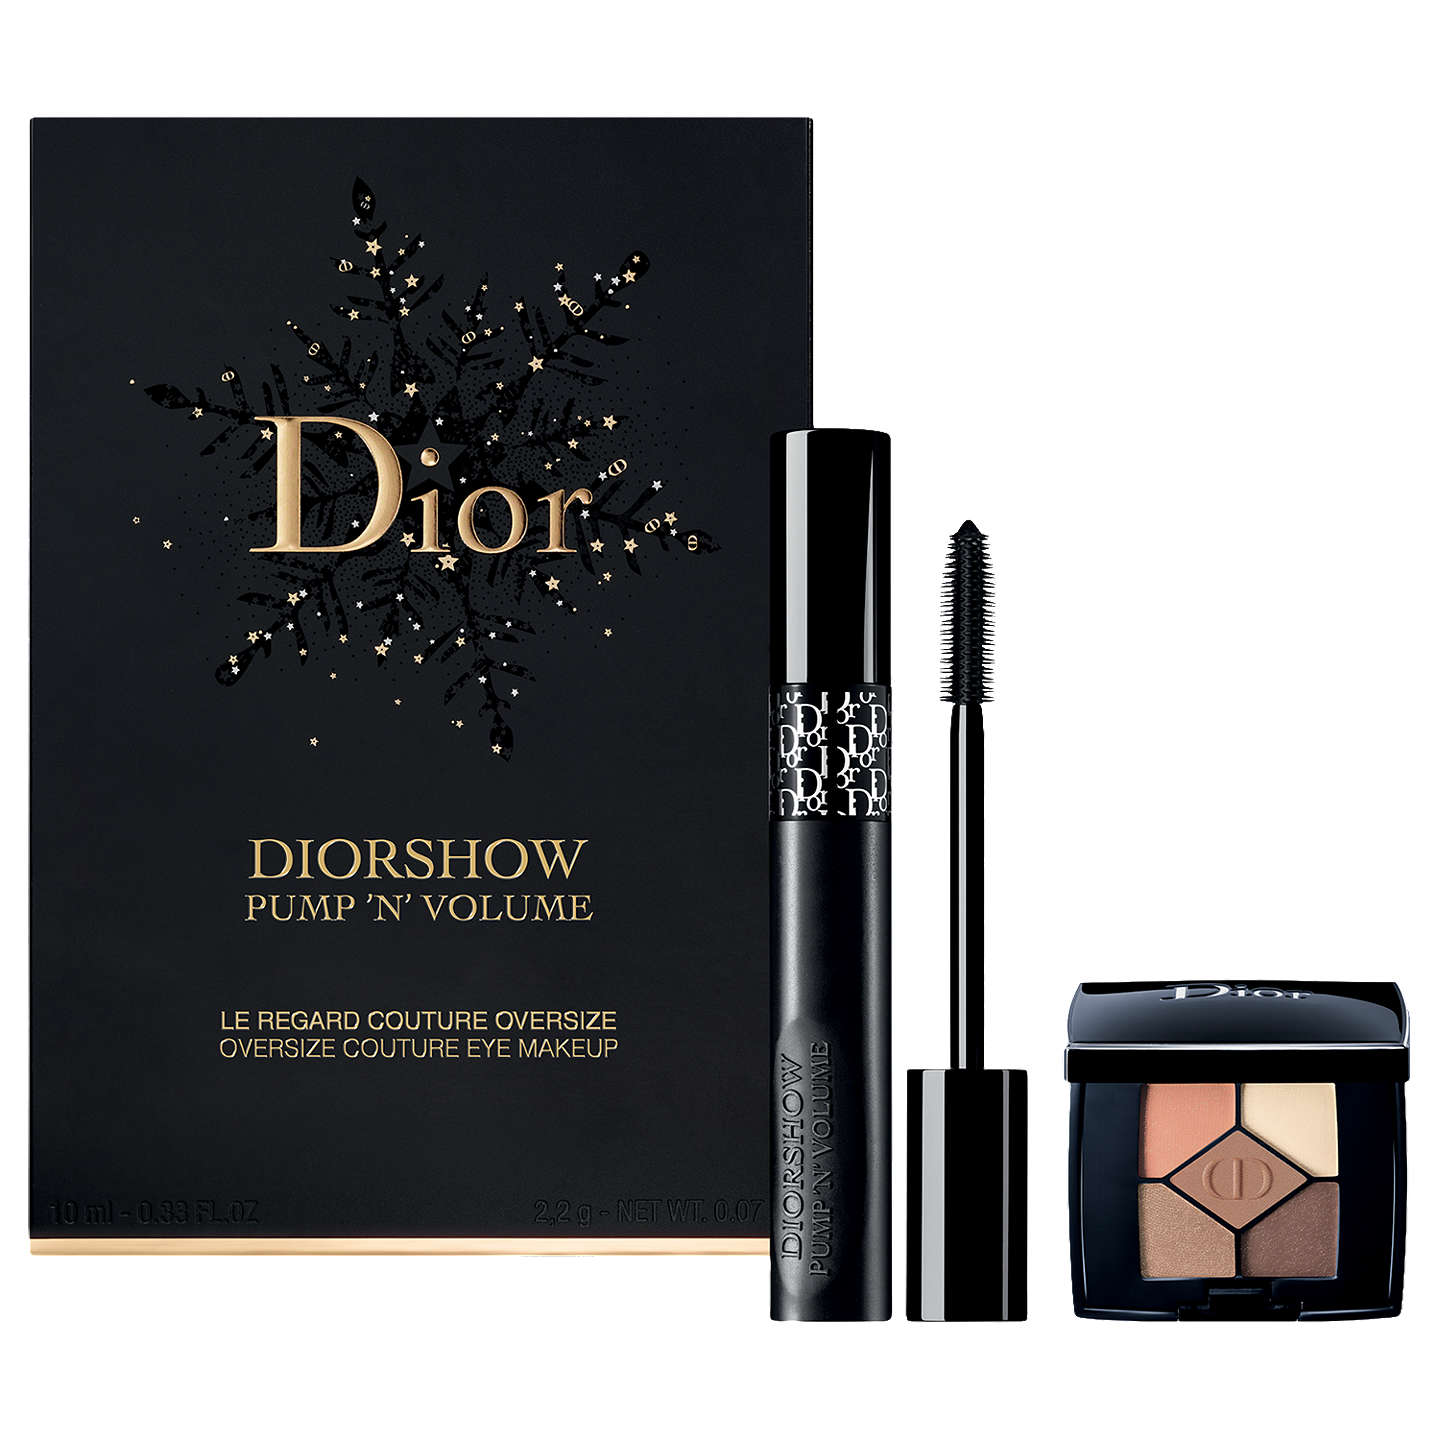 BuyDior Diorshow Pump 'N' Volume Mascara Makeup Gift Set Online at johnlewis.com